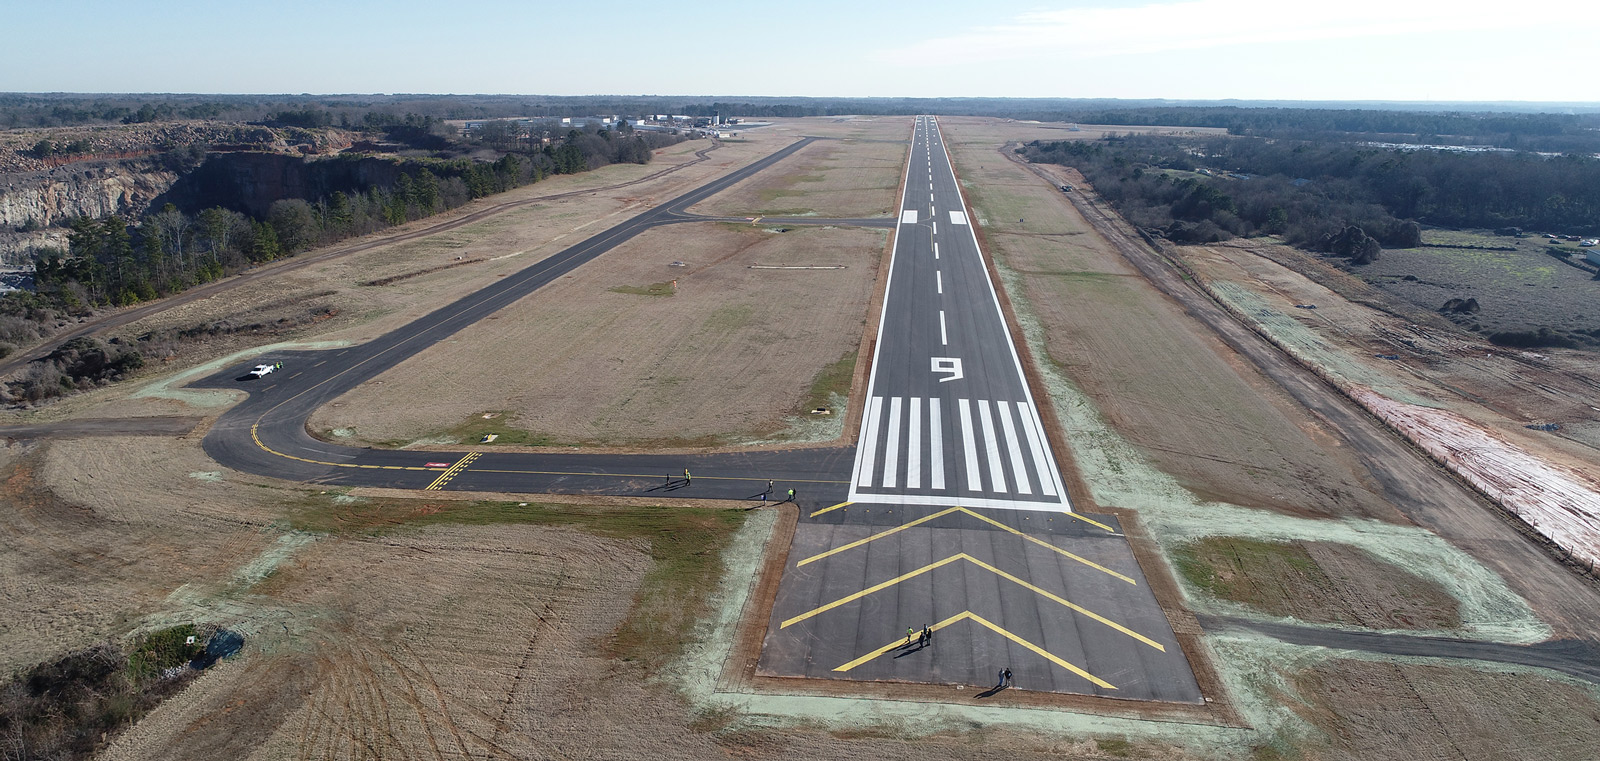 RUNWAY 9-27 REHABILITATION AND OVERLAY ATHENS-BEN EPPS AIRPORT (AHN)